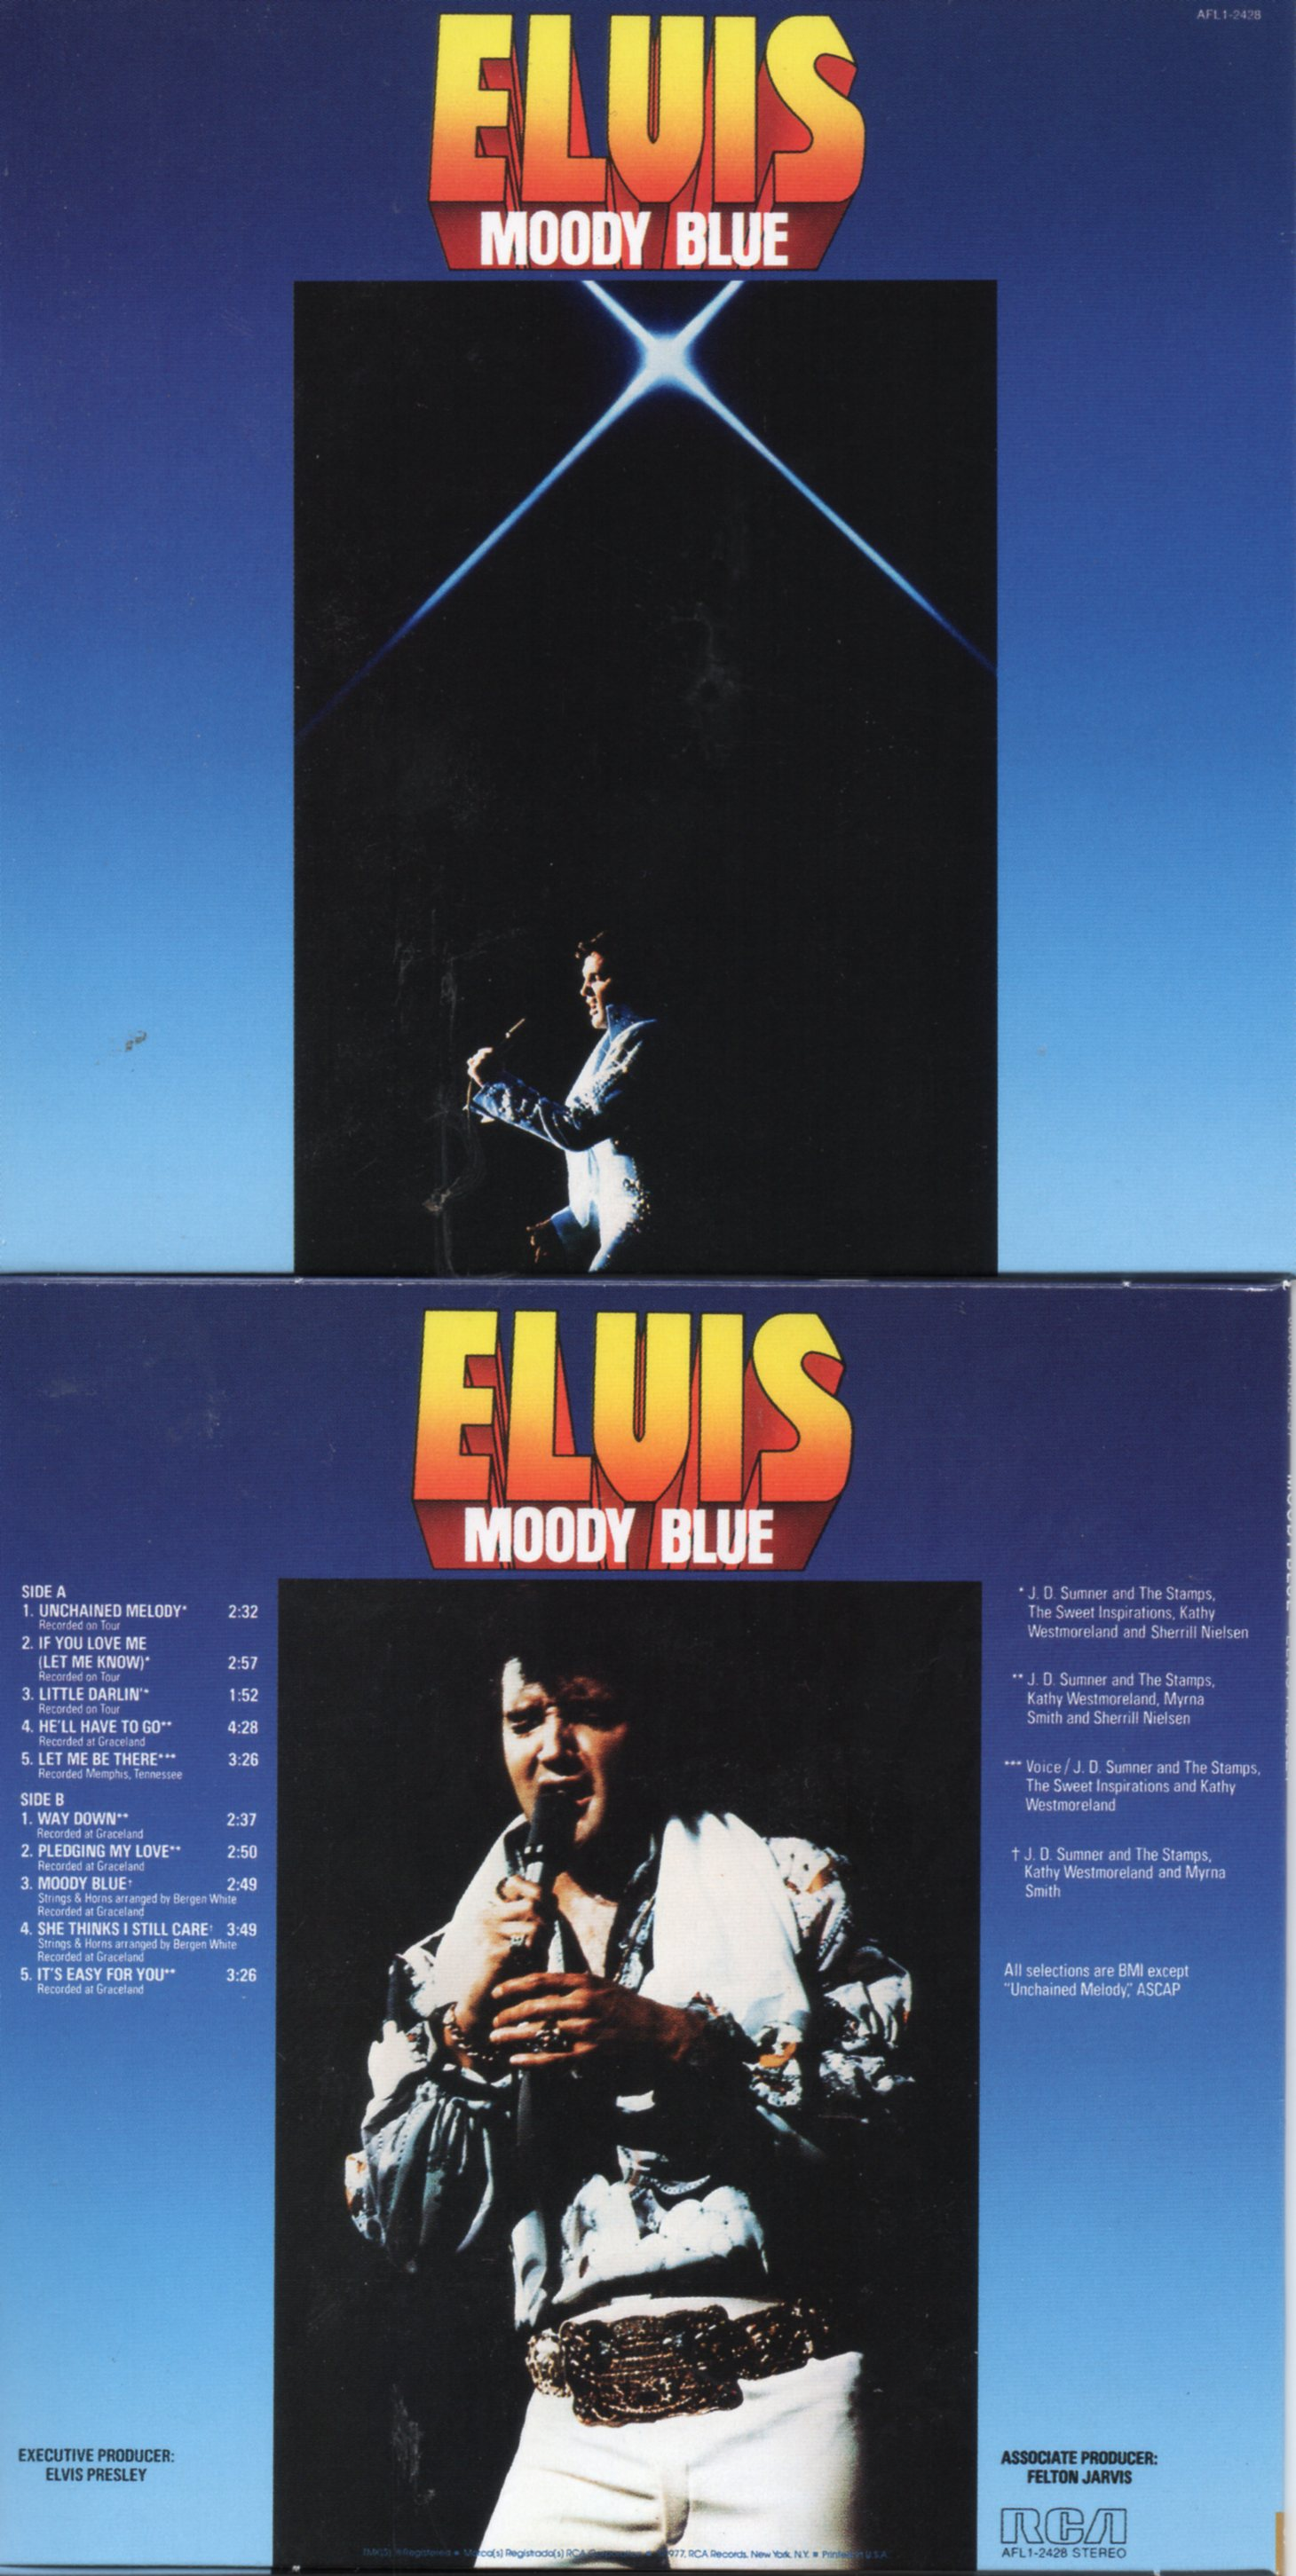 Elvis PRESLEY - Moody Blue (1977 - Mini Lp Replica - 10-track Card Sleeve)